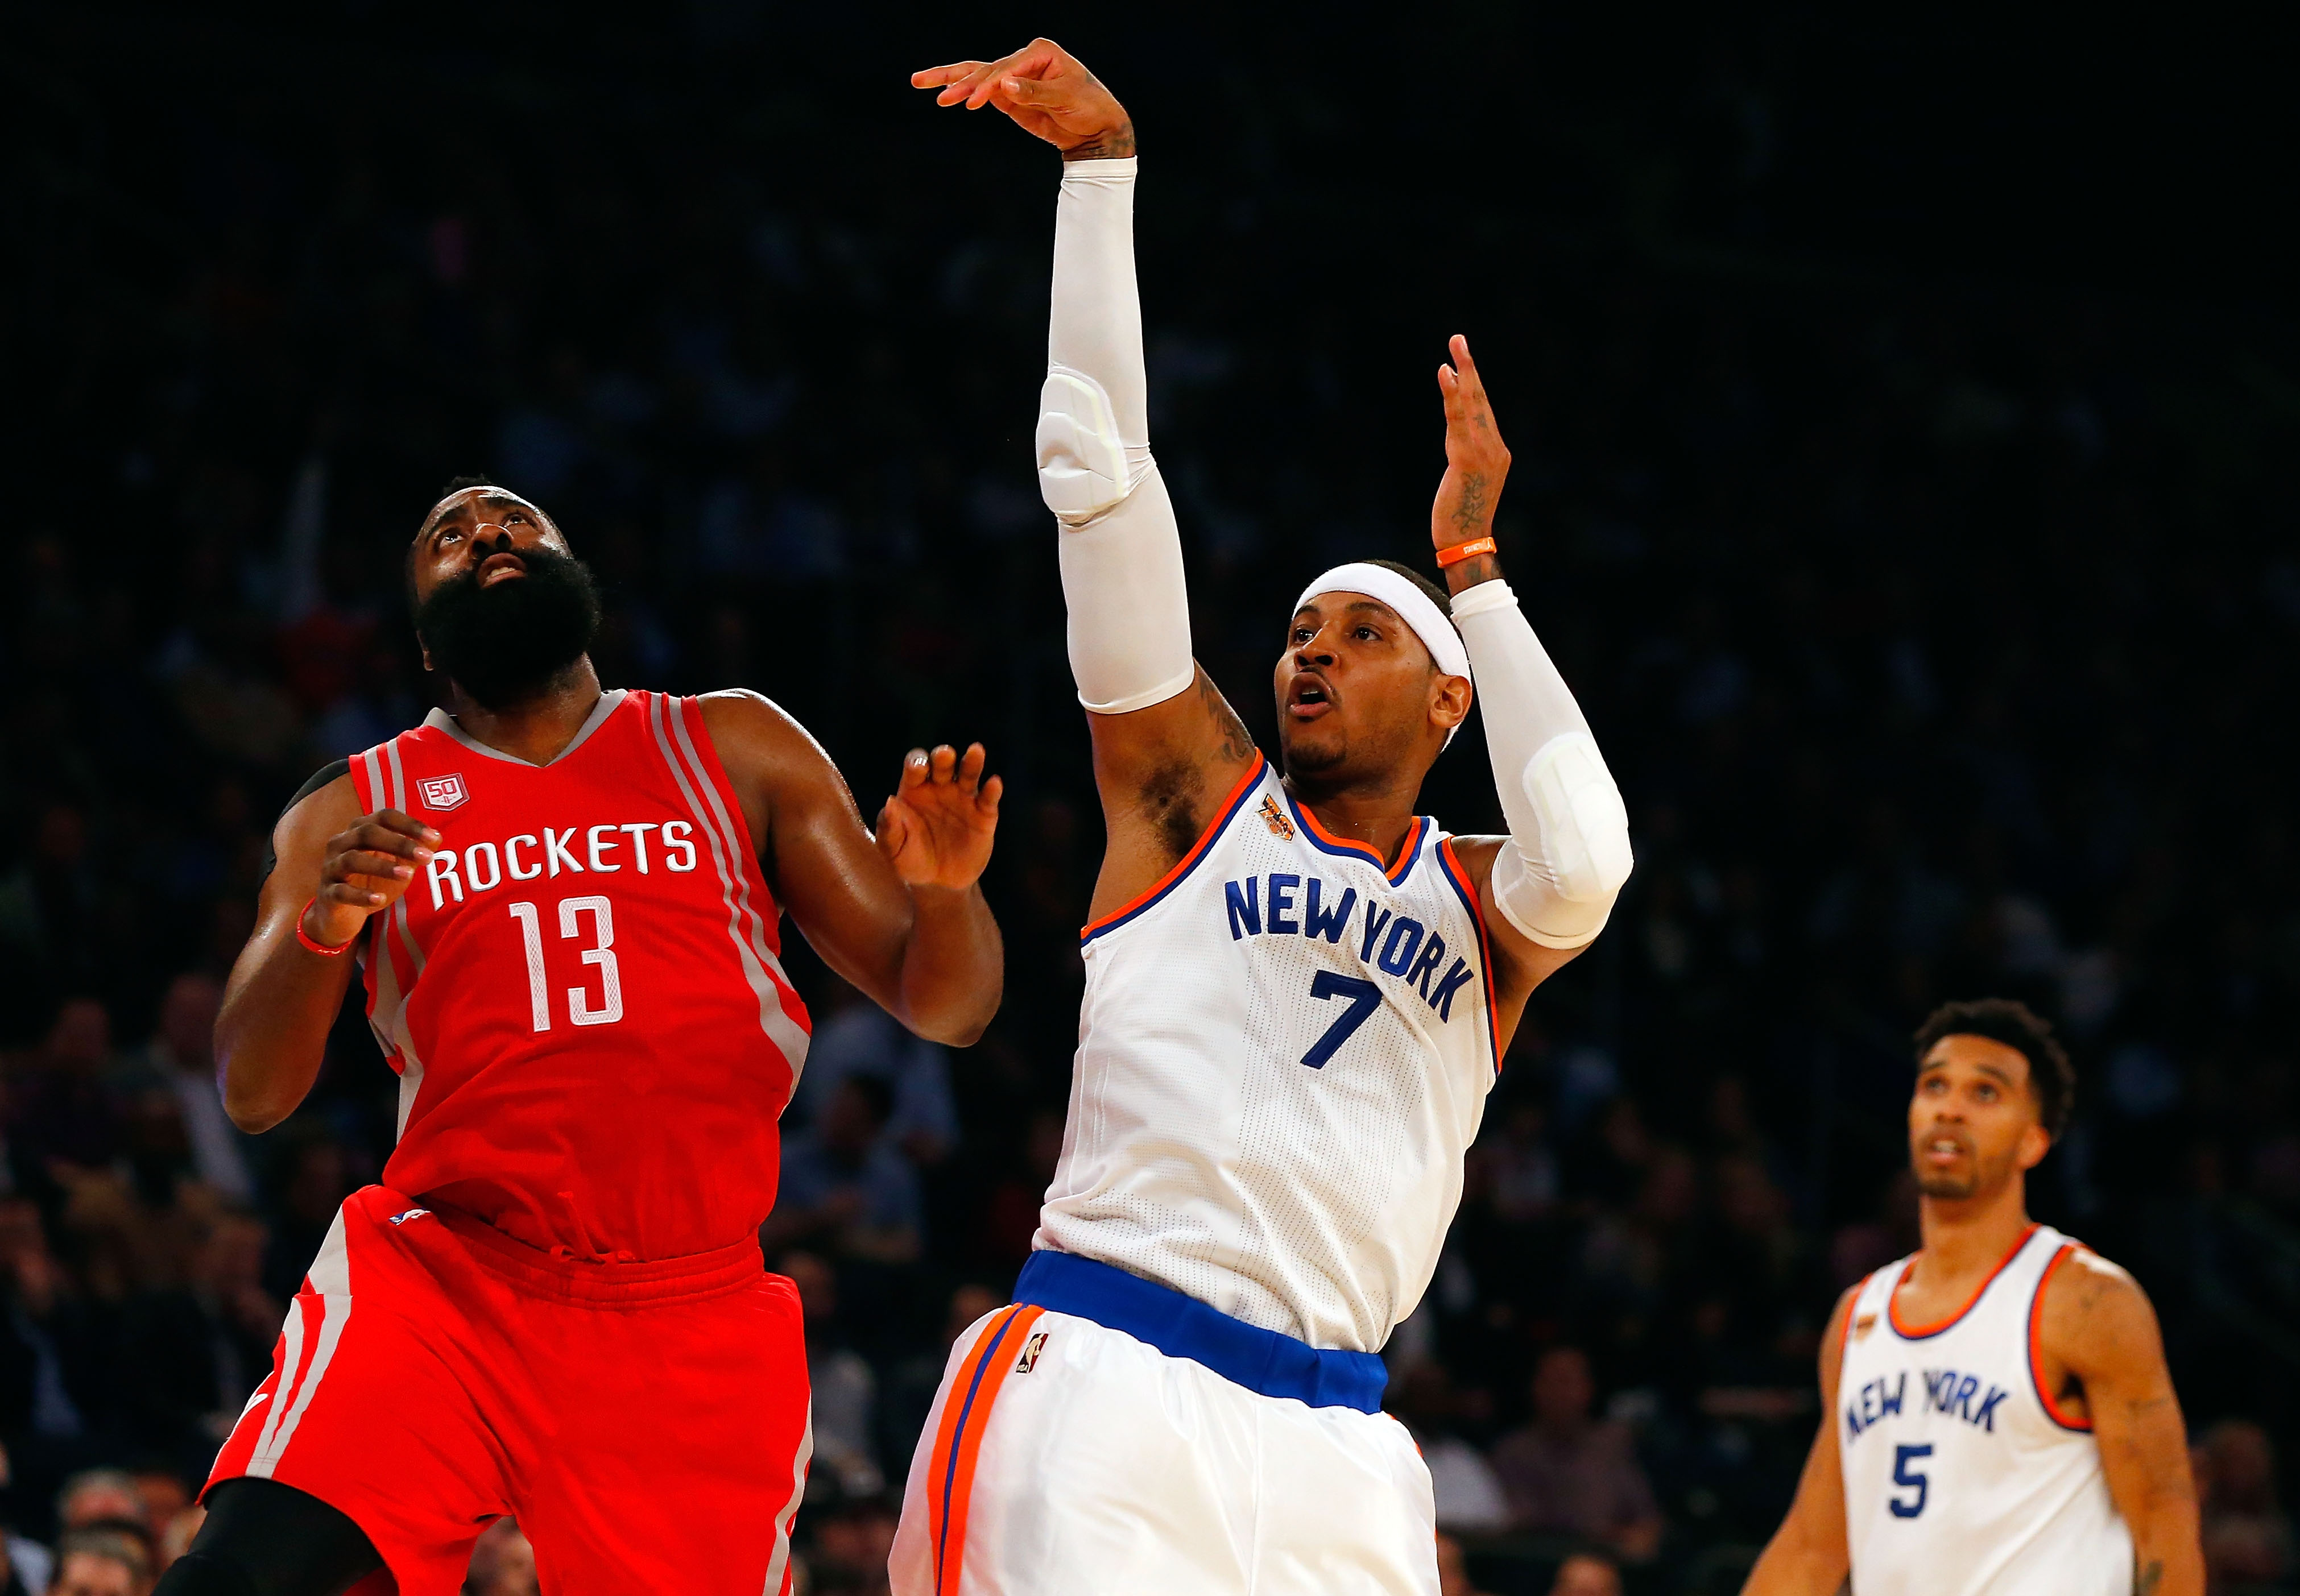 625362568-houston-rockets-v-new-york-knicks.jpg